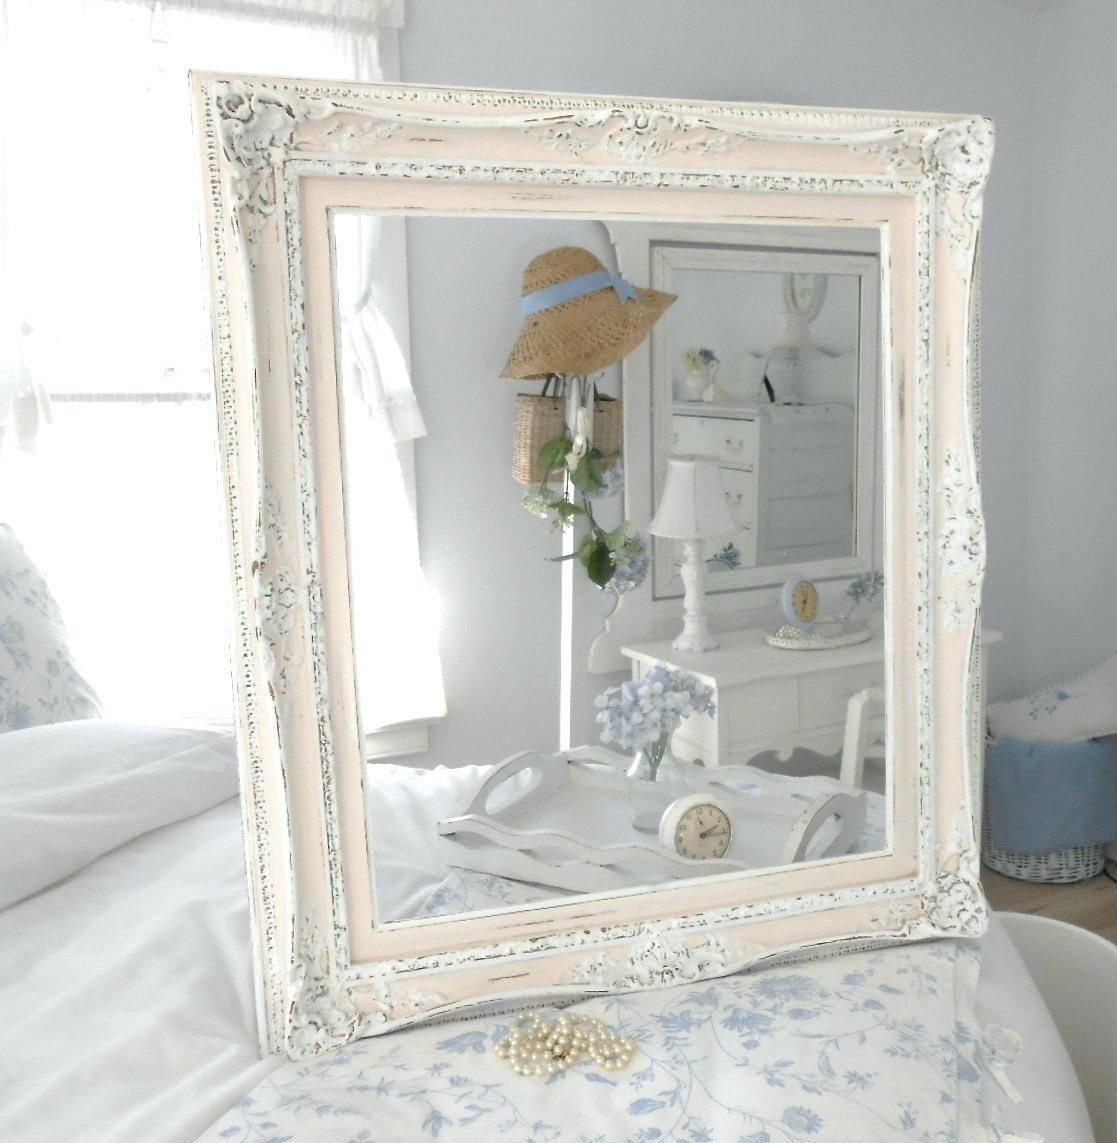 Farmhouse Window Mirror Shabby Chic Large Distressed White Wall Regarding White Shabby Chic Mirror Sale (View 3 of 20)